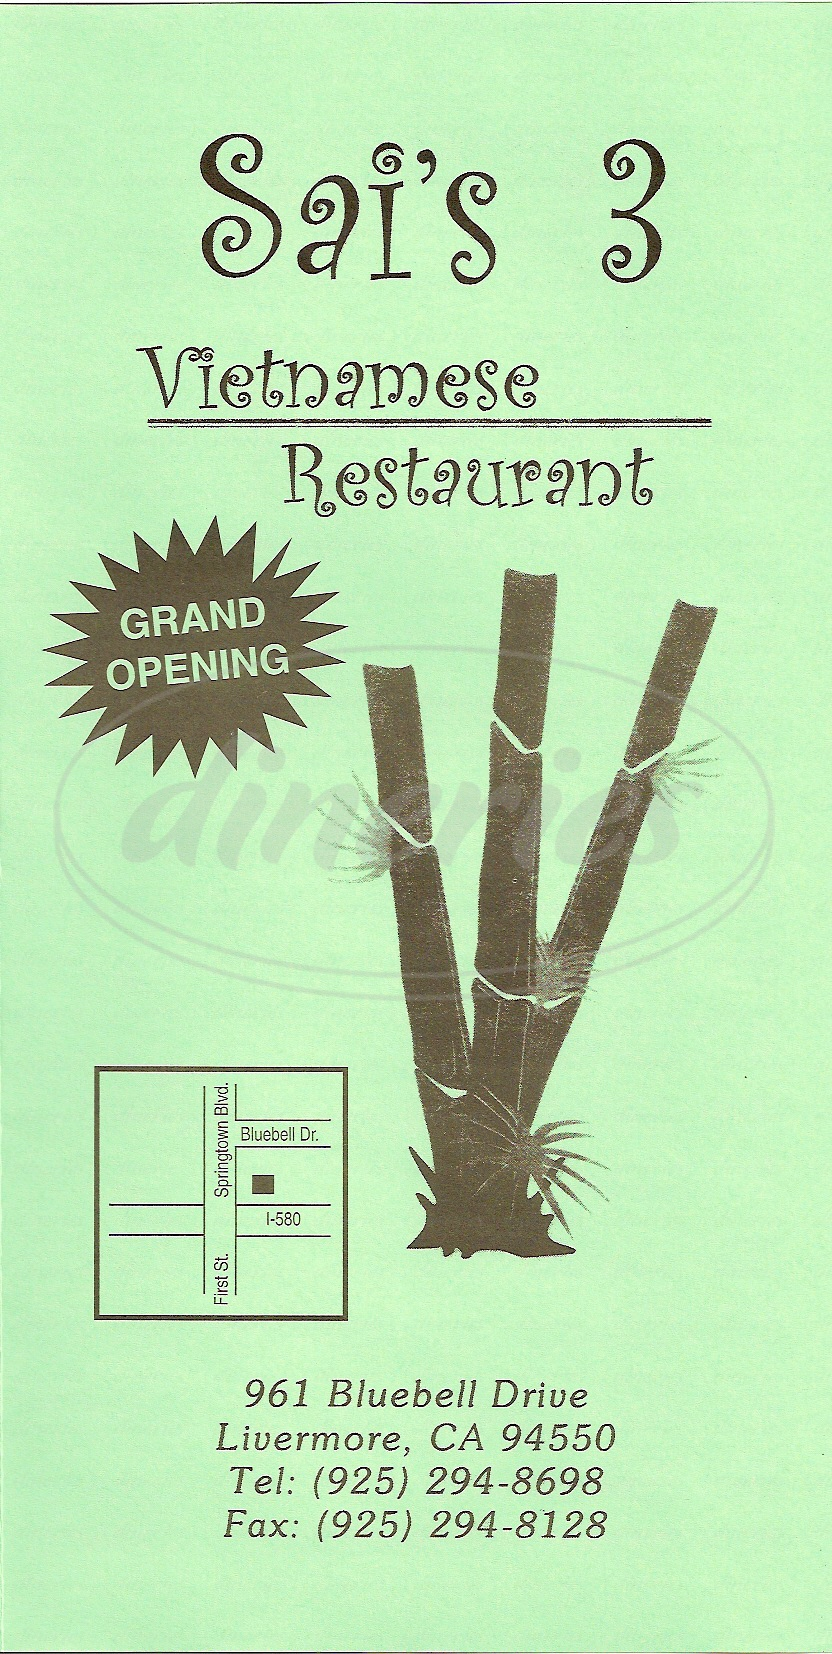 menu for Sai's Vietnamesee Restaurant